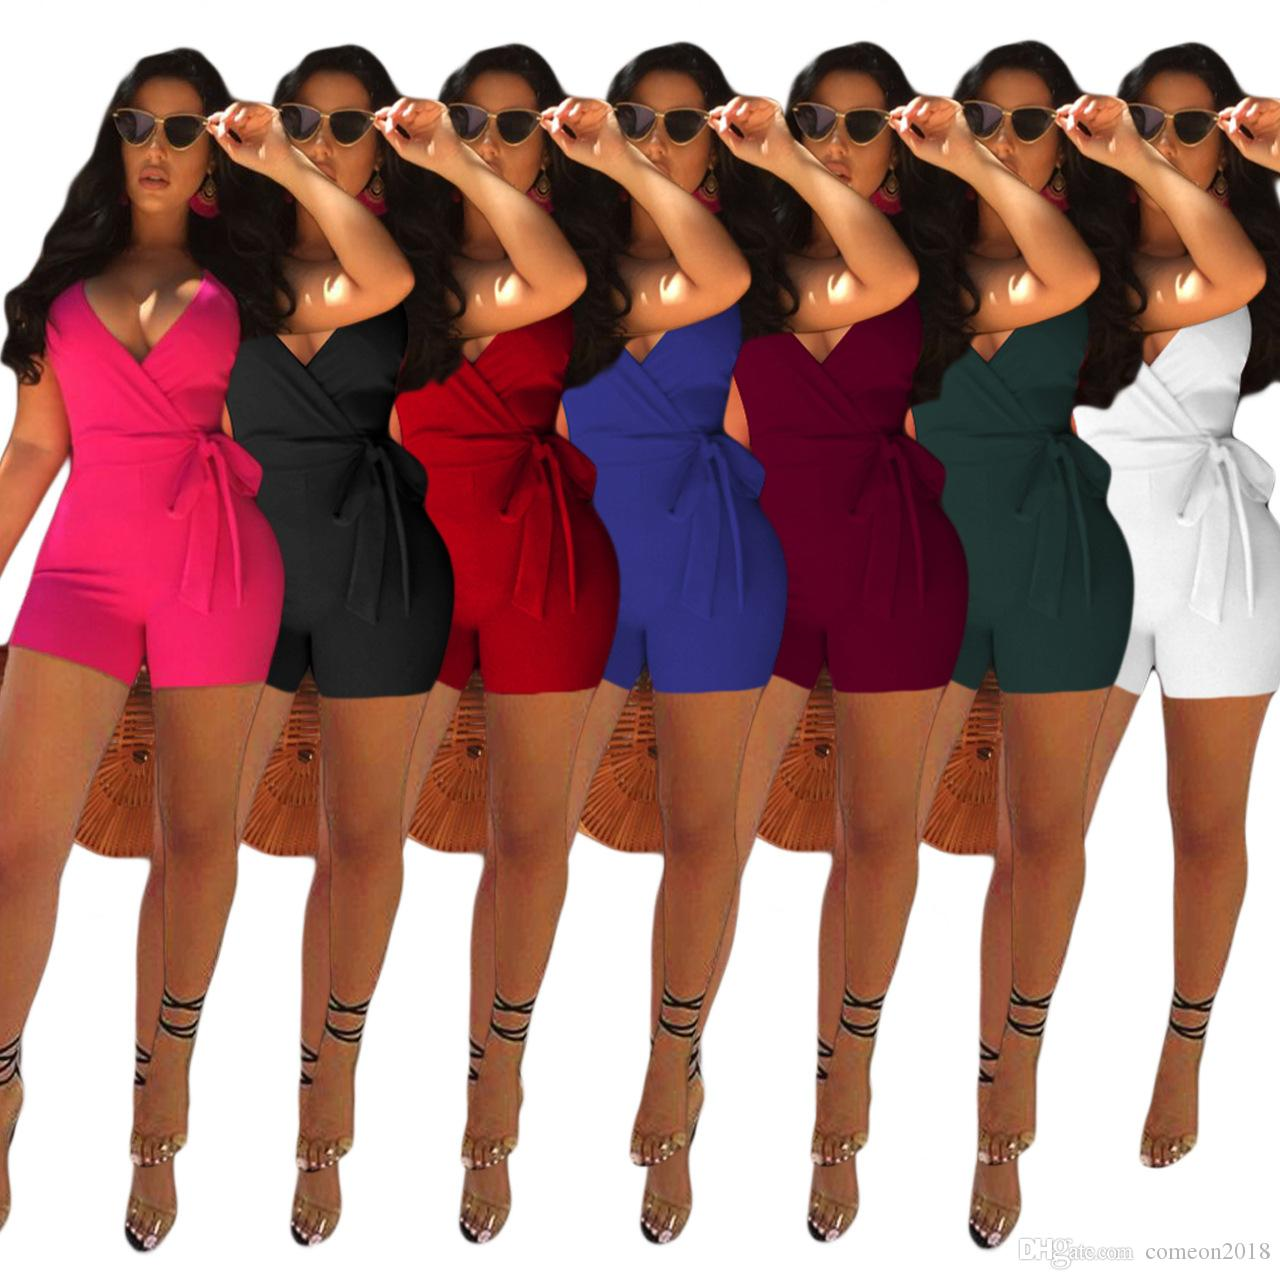 da3ed9b28db 2019 Women Clothes Strap V Neck Bodycon Romper Playsuits Solid Color  Sleeveless Jumpsuits Tracksuits Fashion Sexy Outfit Bandage Women Rompers  From ...